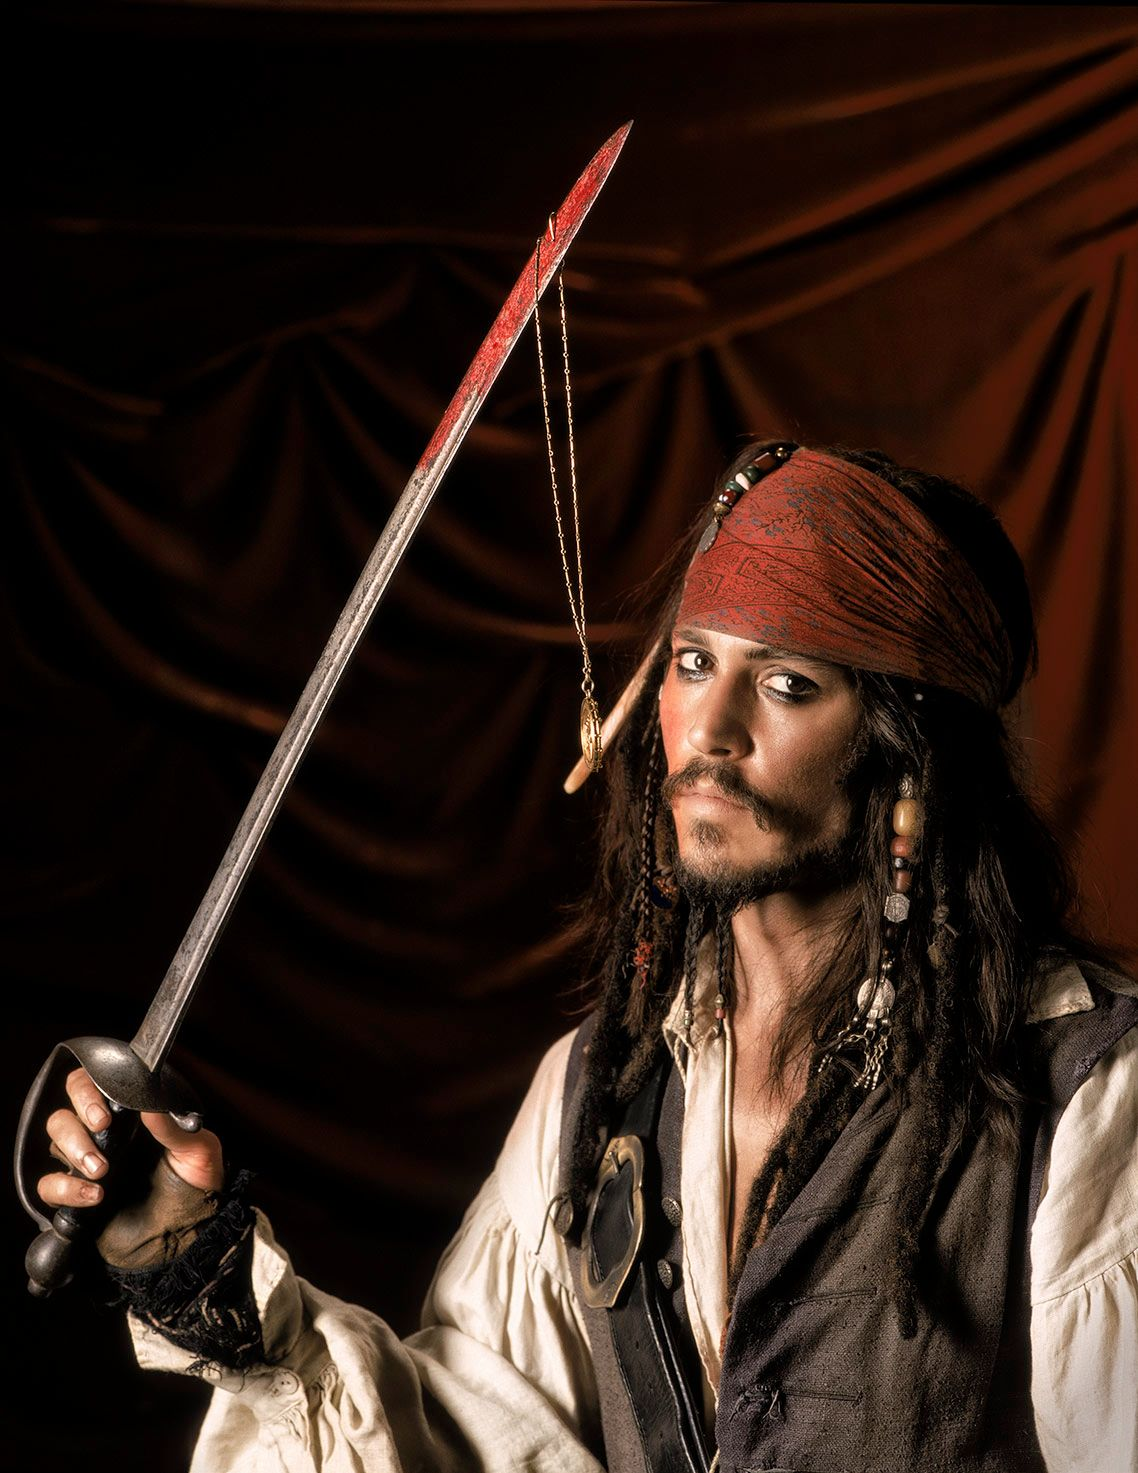 JOHNNY DEPP • PIRATES OF THE CARIBBEAN • THE CURSE OF THE BLACK PEARL